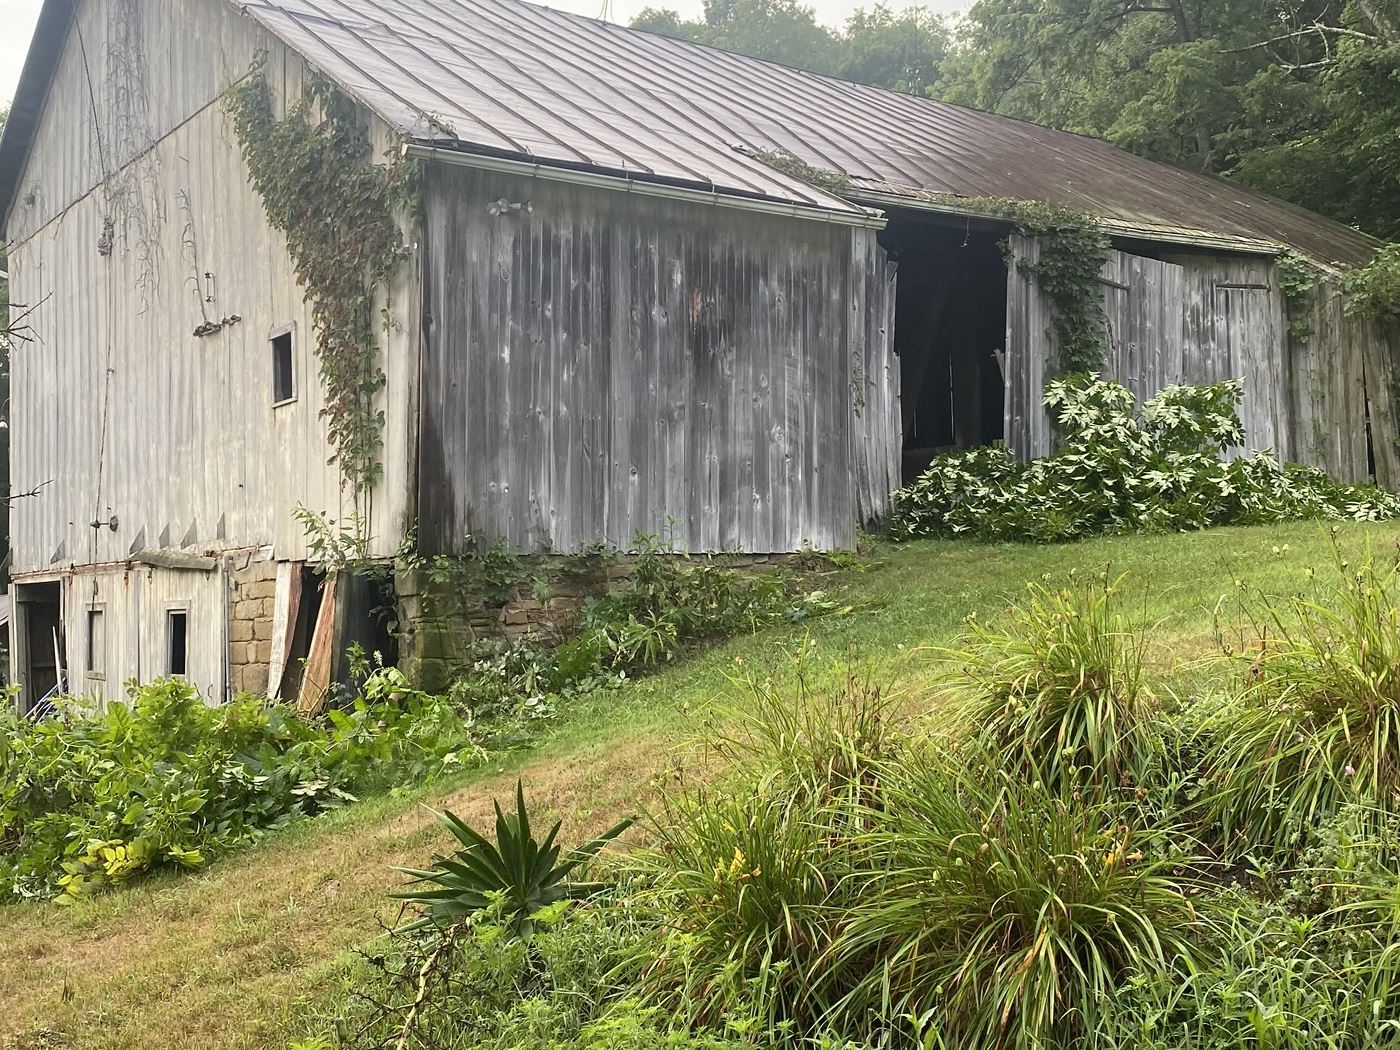 Hugon Barn Frame Ohio Valley Barn Salvage 1.JPG